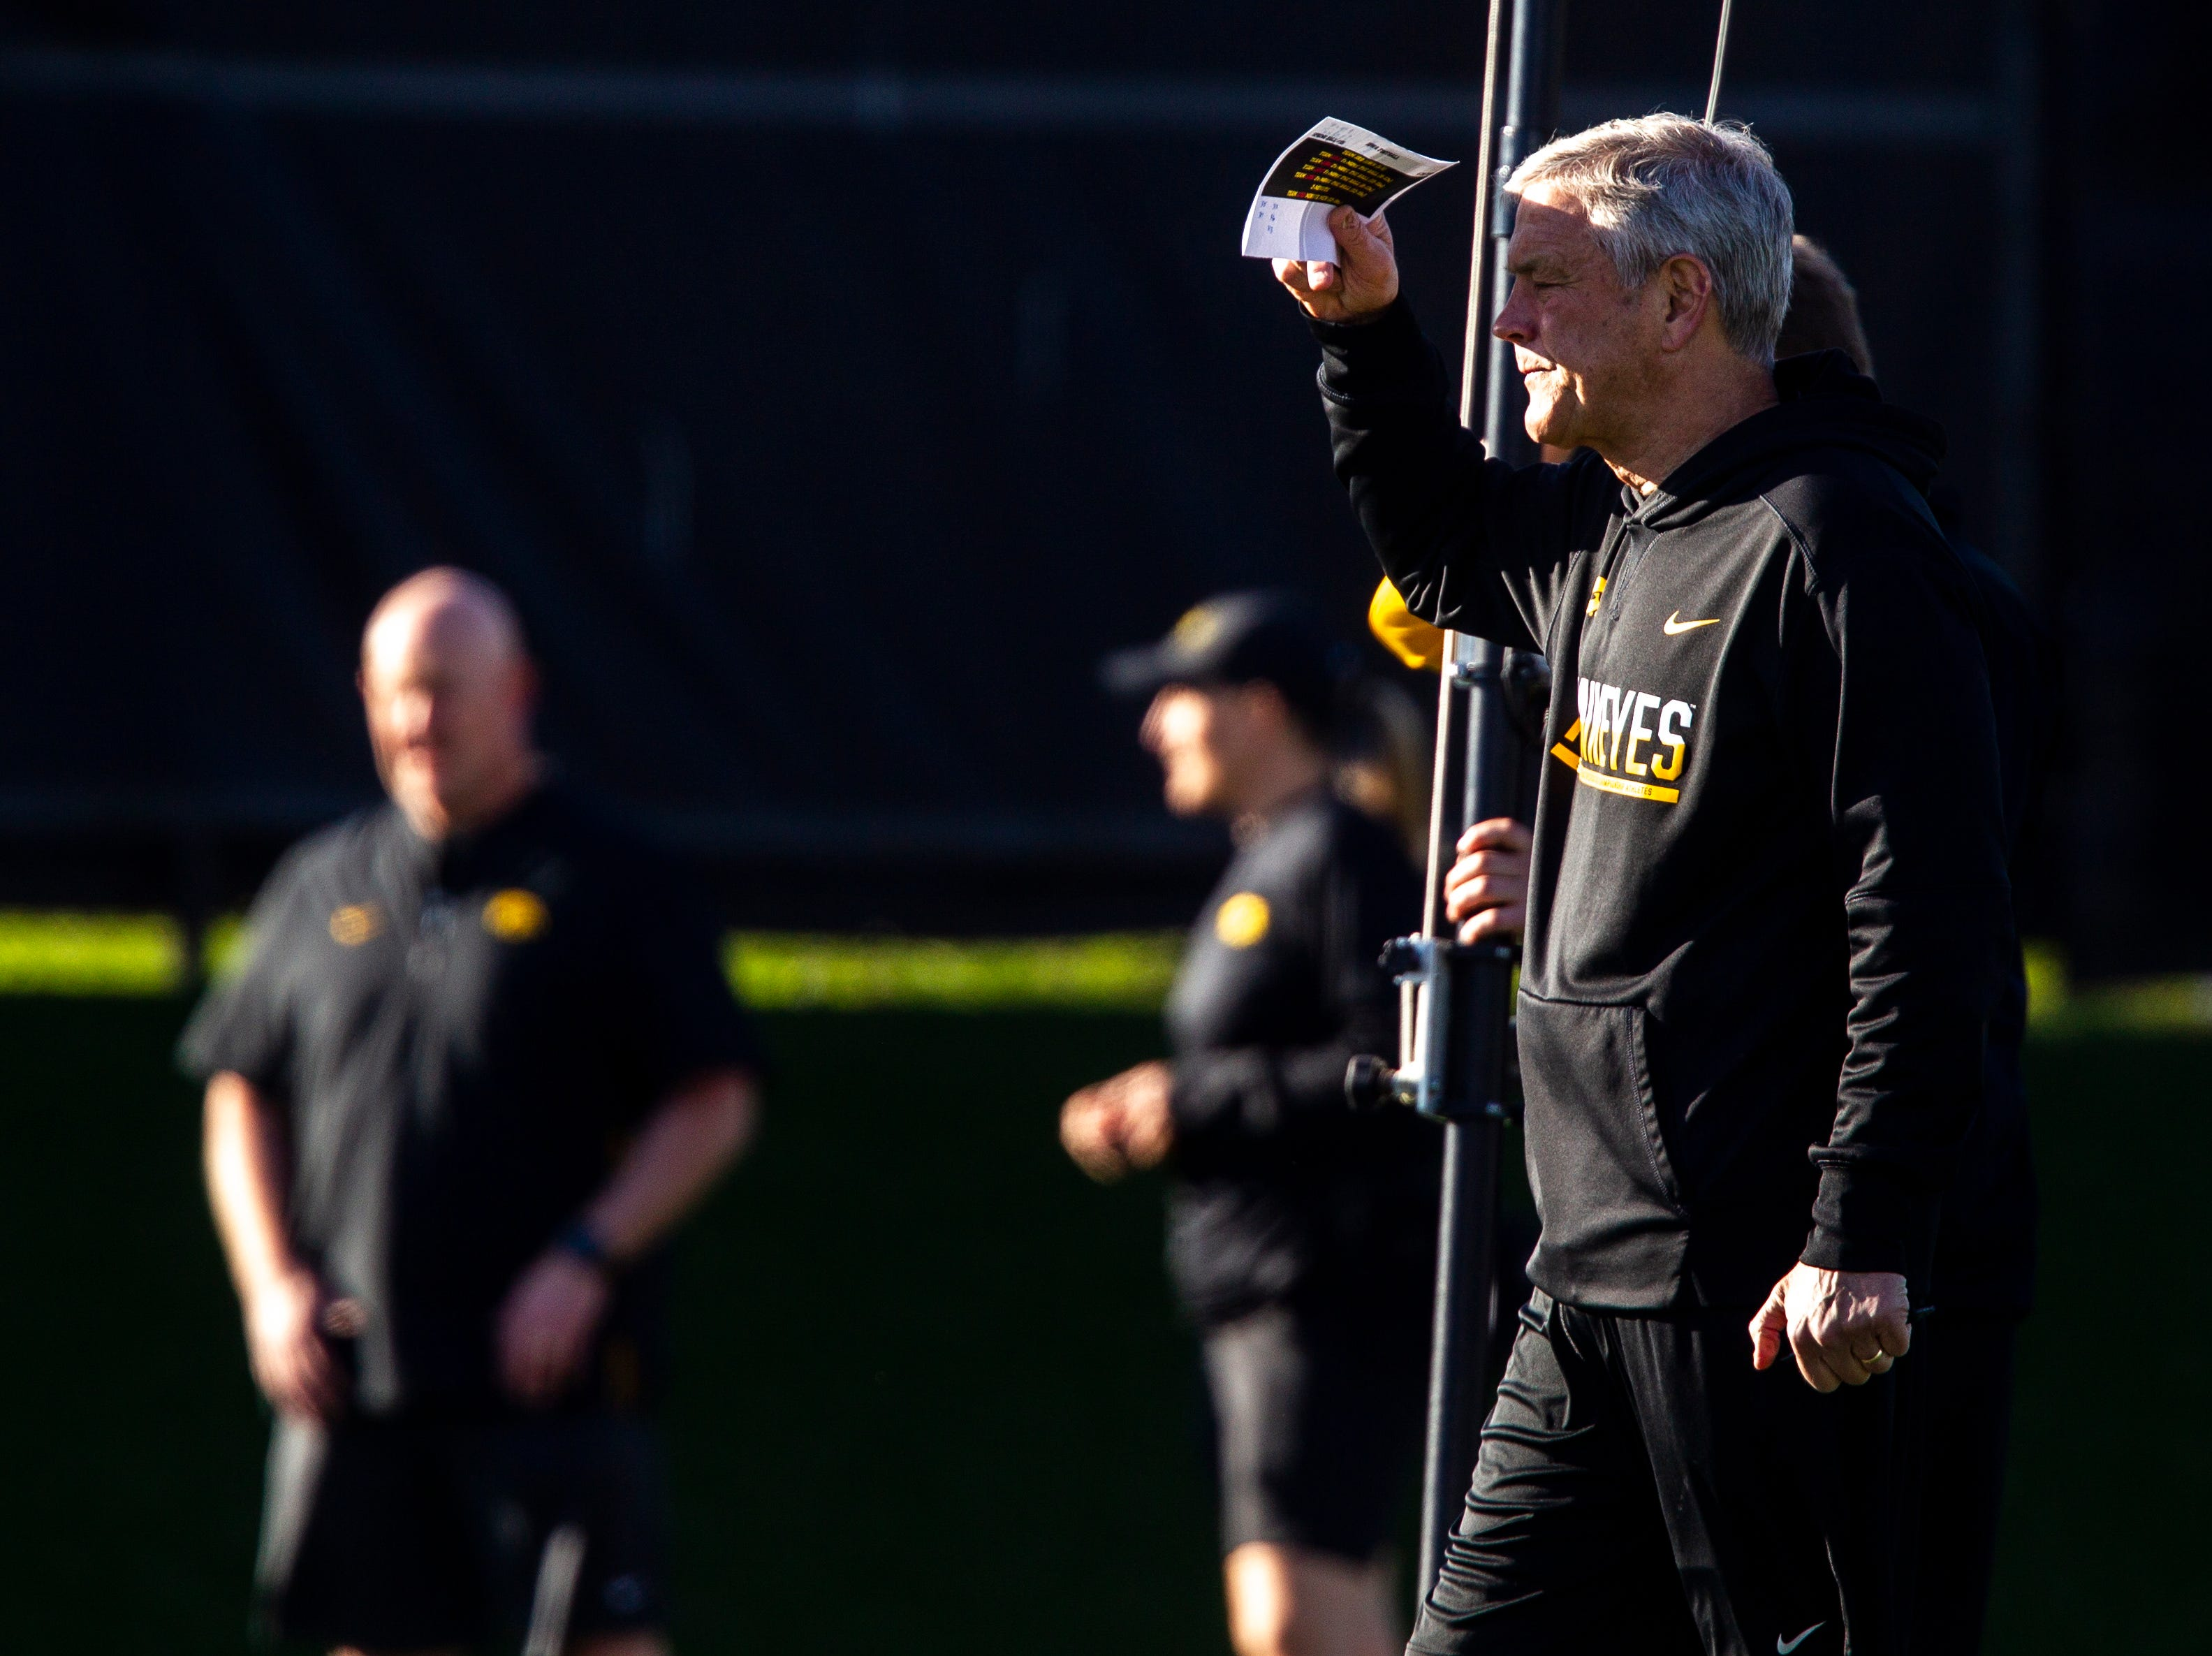 Iowa head coach Kirk Ferentz shields his eyes from the sun during the final spring football practice, Friday, April 26, 2019, at the University of Iowa outdoor practice facility in Iowa City, Iowa.